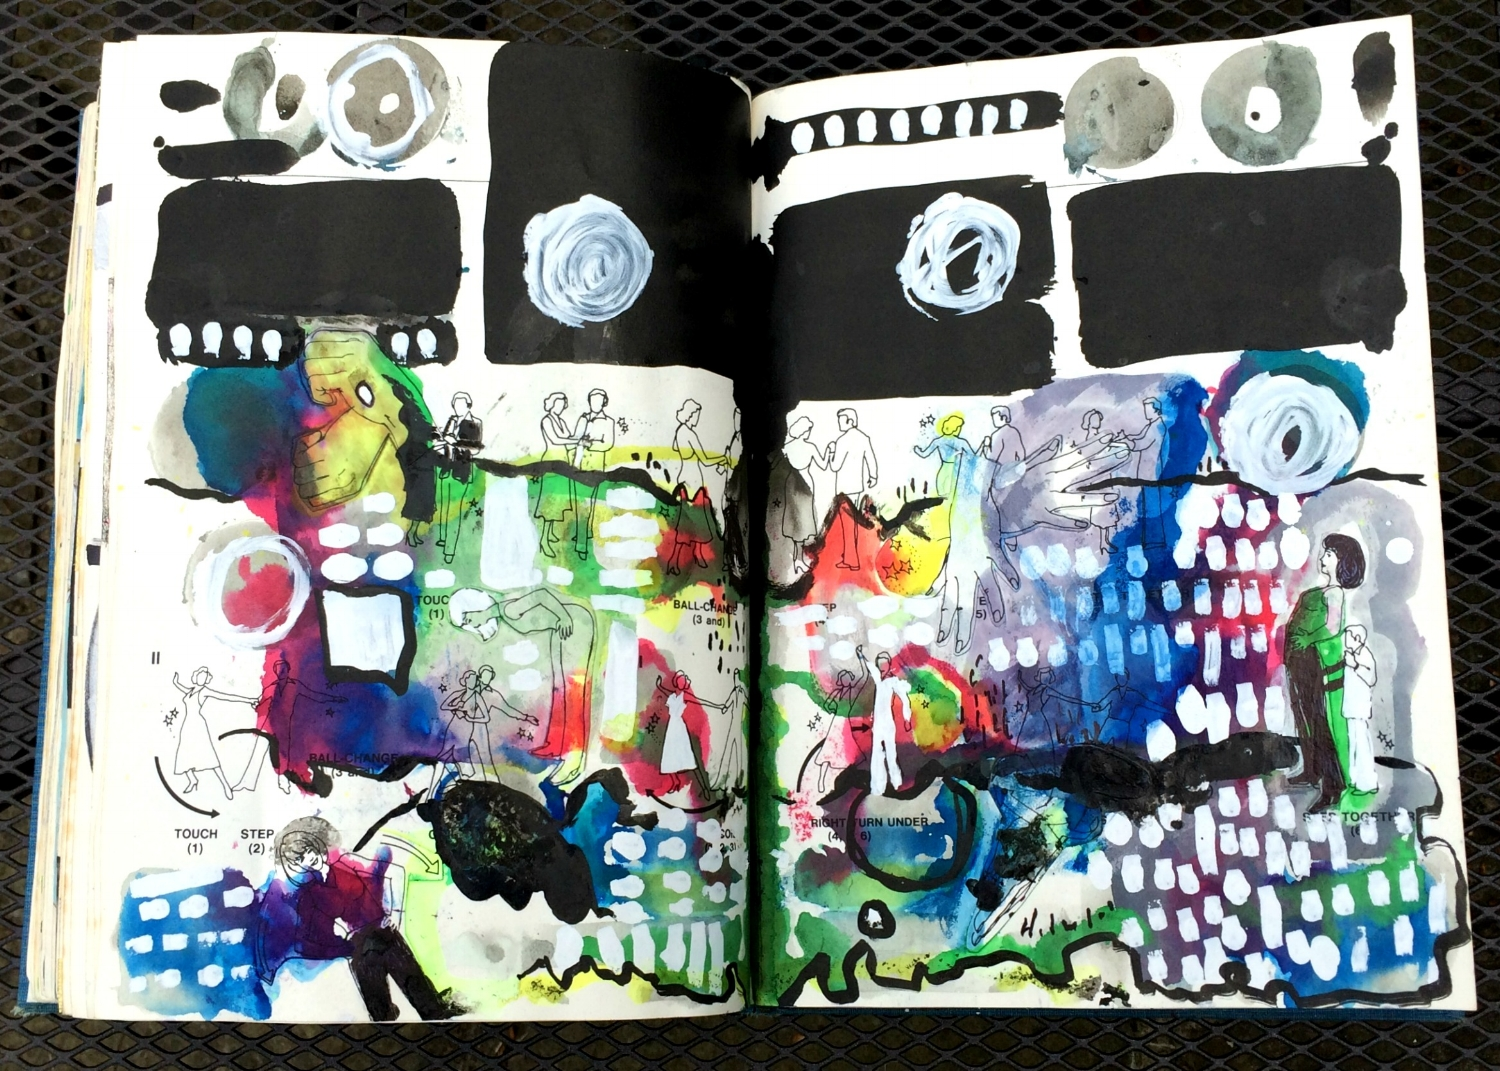 Altered Book (Disco Dance Moves): abstracts